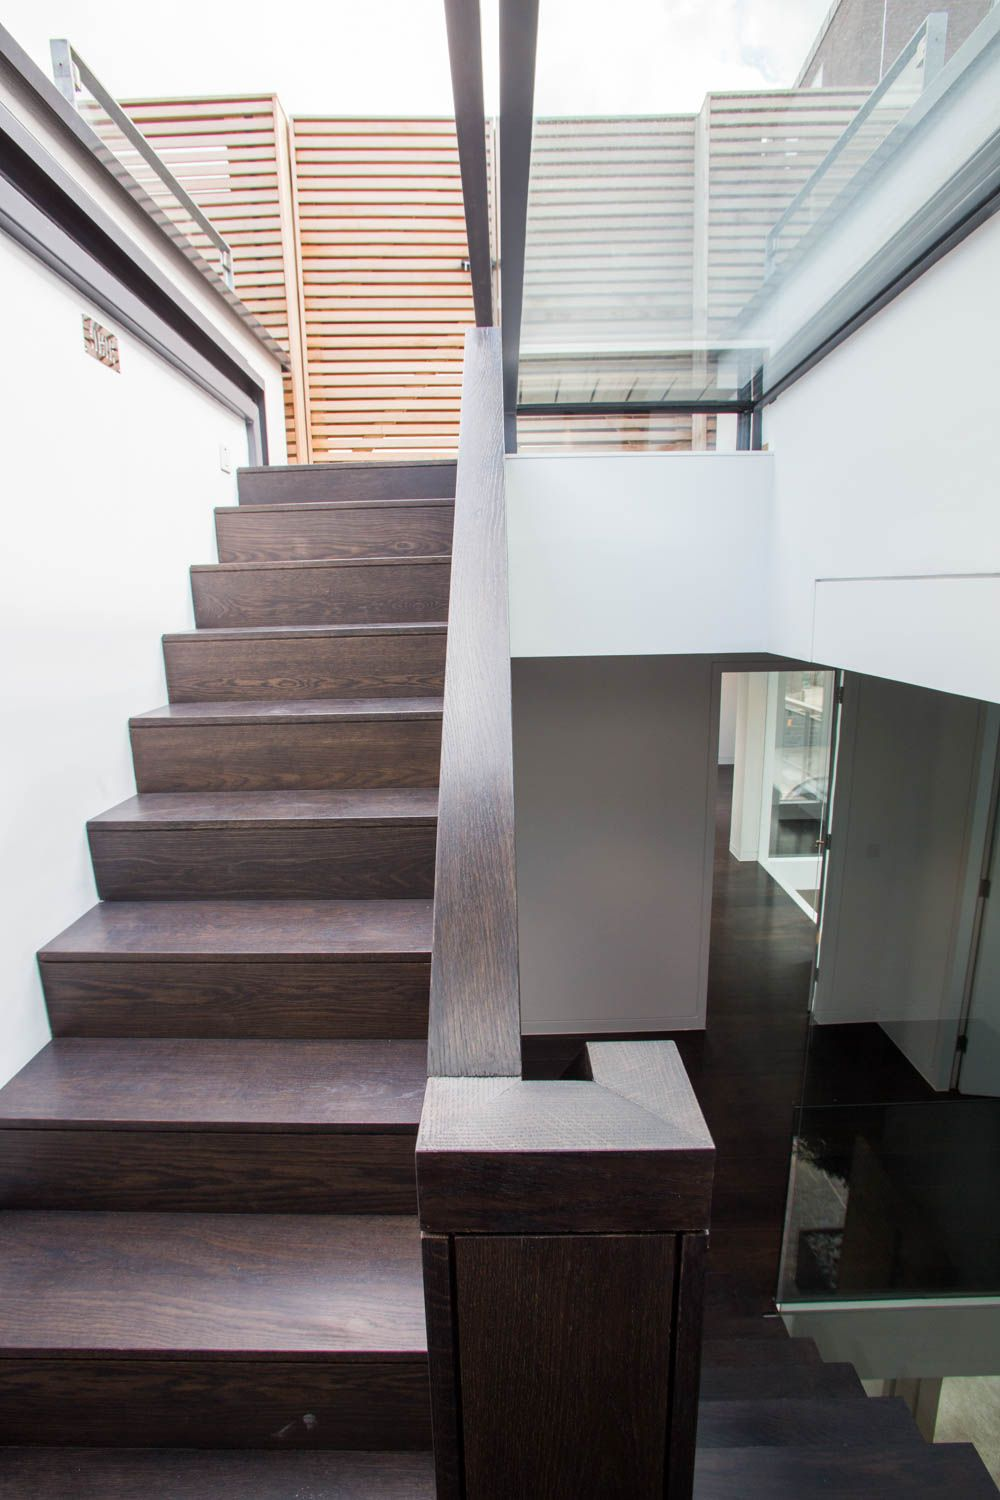 Three Wall Box Rooflight Designed To Allow Direct Access From A Stairwell To A Rooftop Terrace Or Similar Rooftop Terrace Design Patio Roof Rooftop Patio